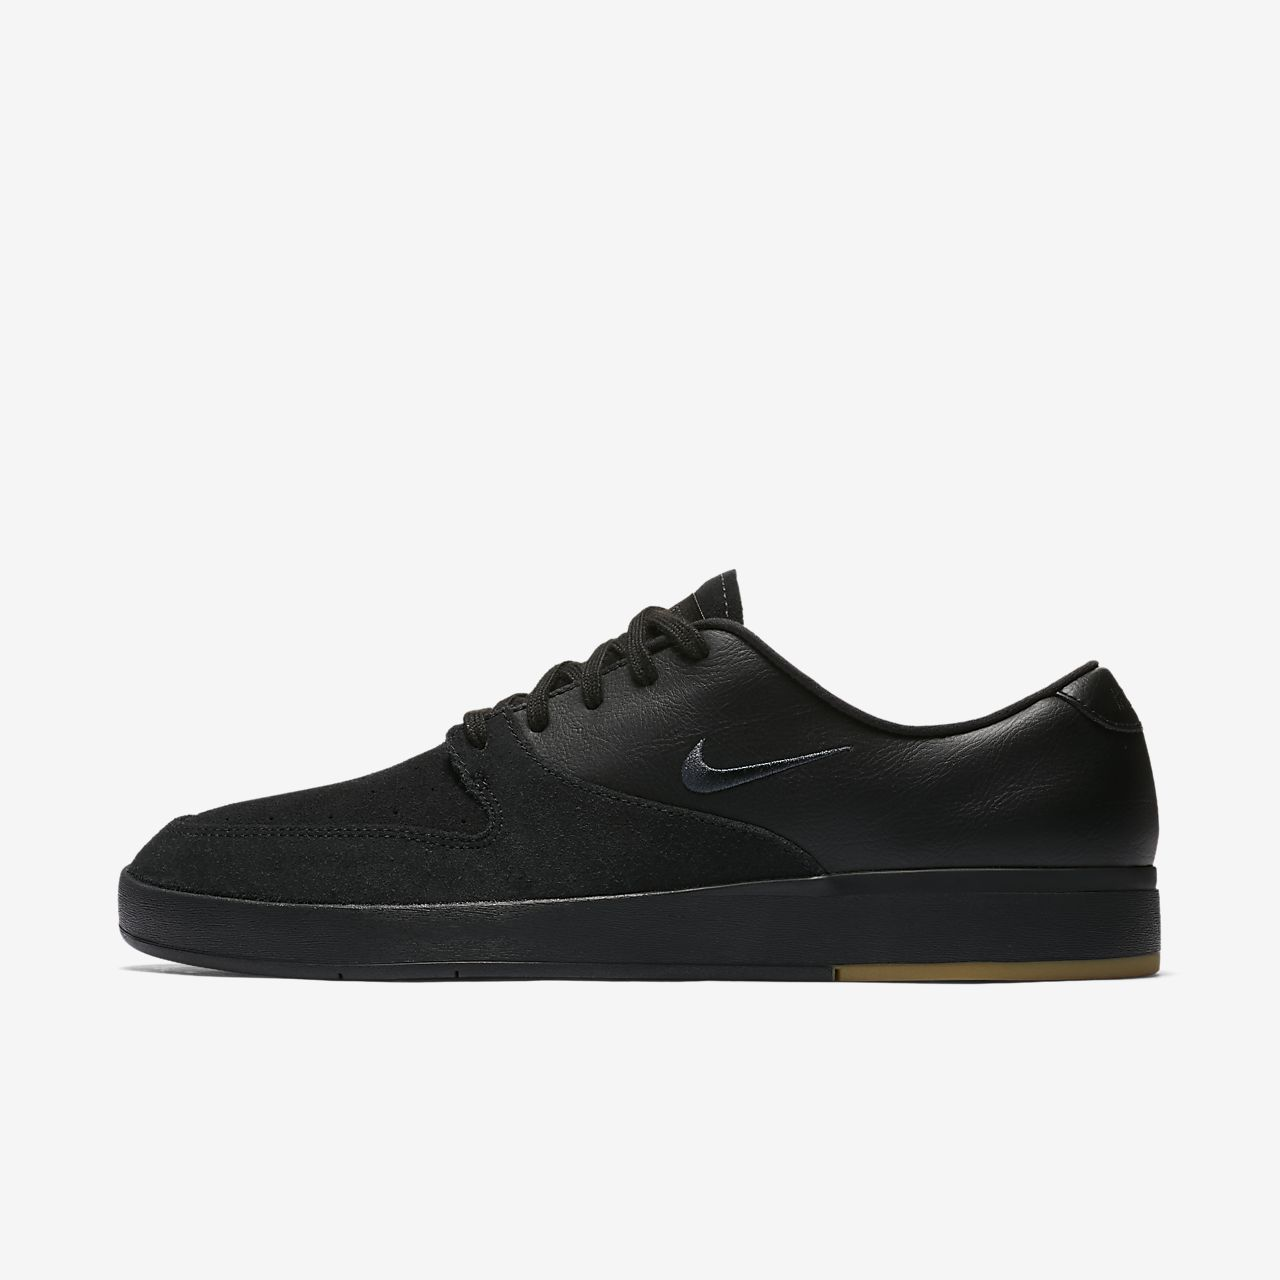 nike 6 0 skate shoes. nike sb zoom paul rodriguez ten men\u0027s skateboarding shoe 6 0 skate shoes